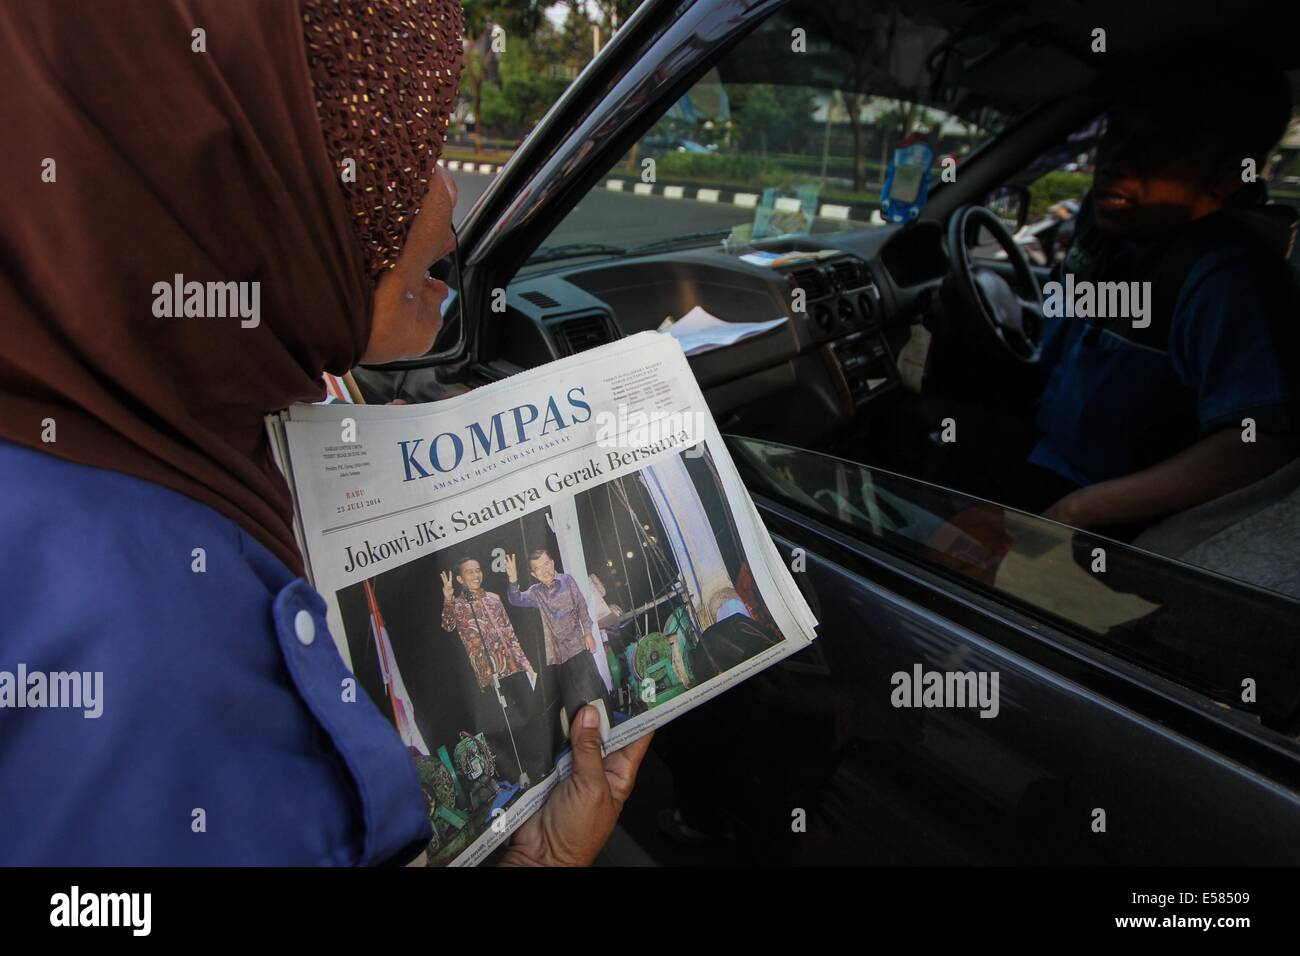 Semarang, Central Java, Indonesia. 23rd July, 2014.  A newspaper seller offers a newspaper carrying the front page - Stock Image